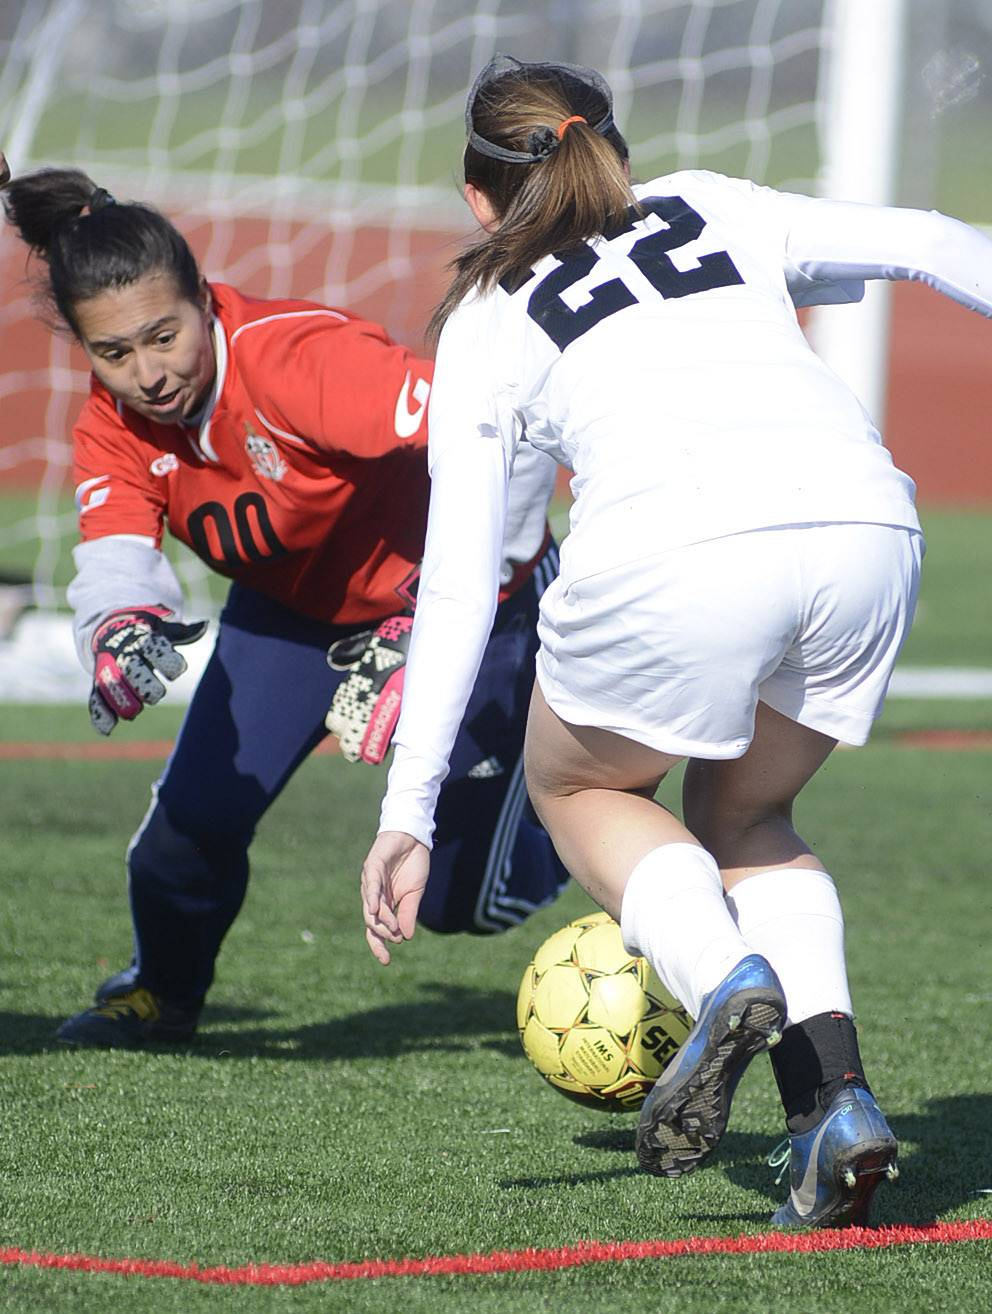 East Aurora's goalie Ruby Garcia dives to grab a ball before Kaneland's Holly Collingbourne can score a goal in the first half on Wednesday, April 16.